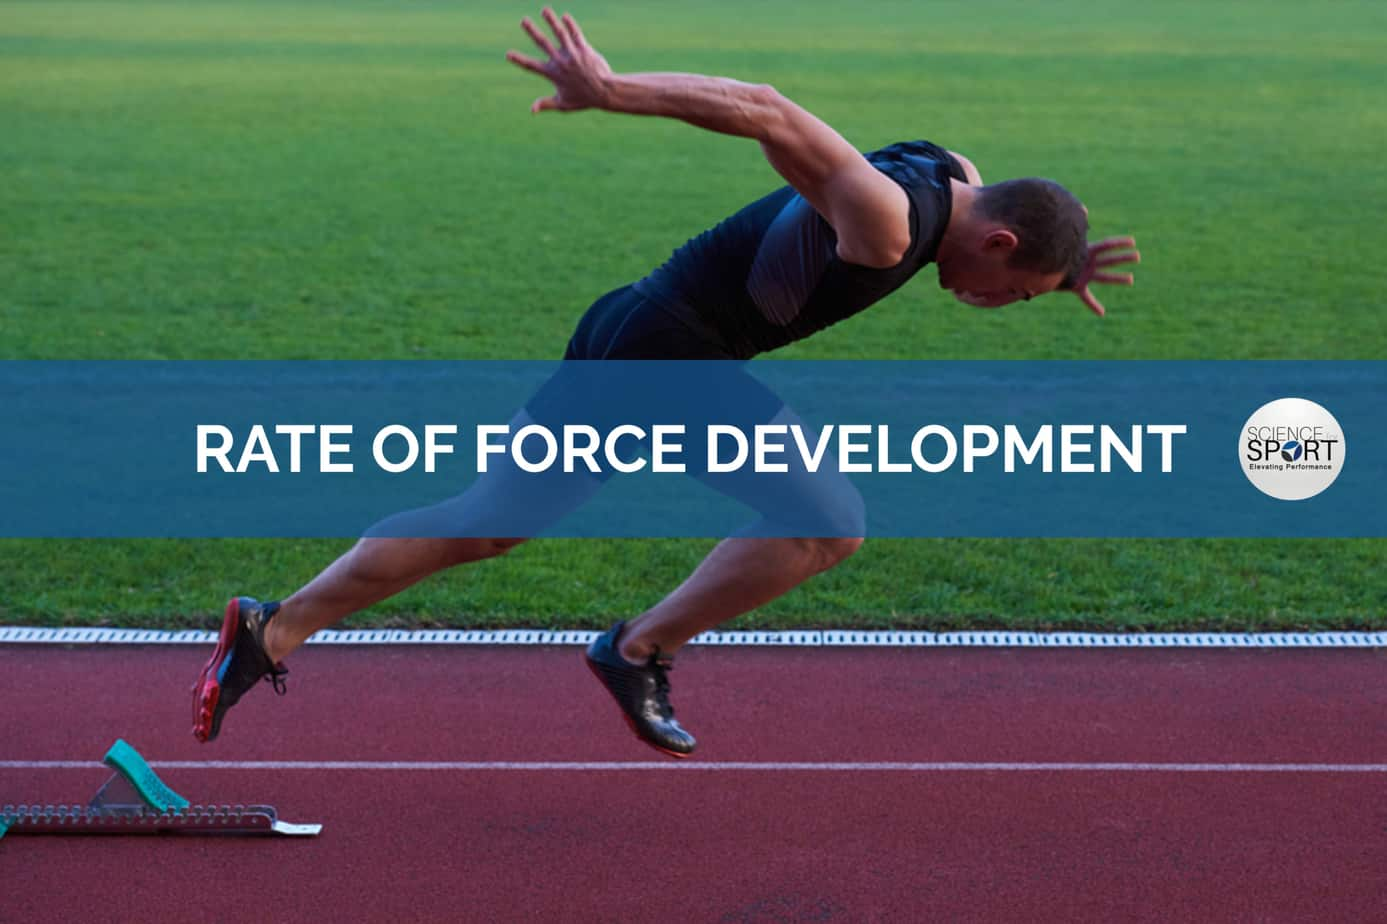 Science for Sport - Rate of Force Development (RFD) - Strength and Conditioning